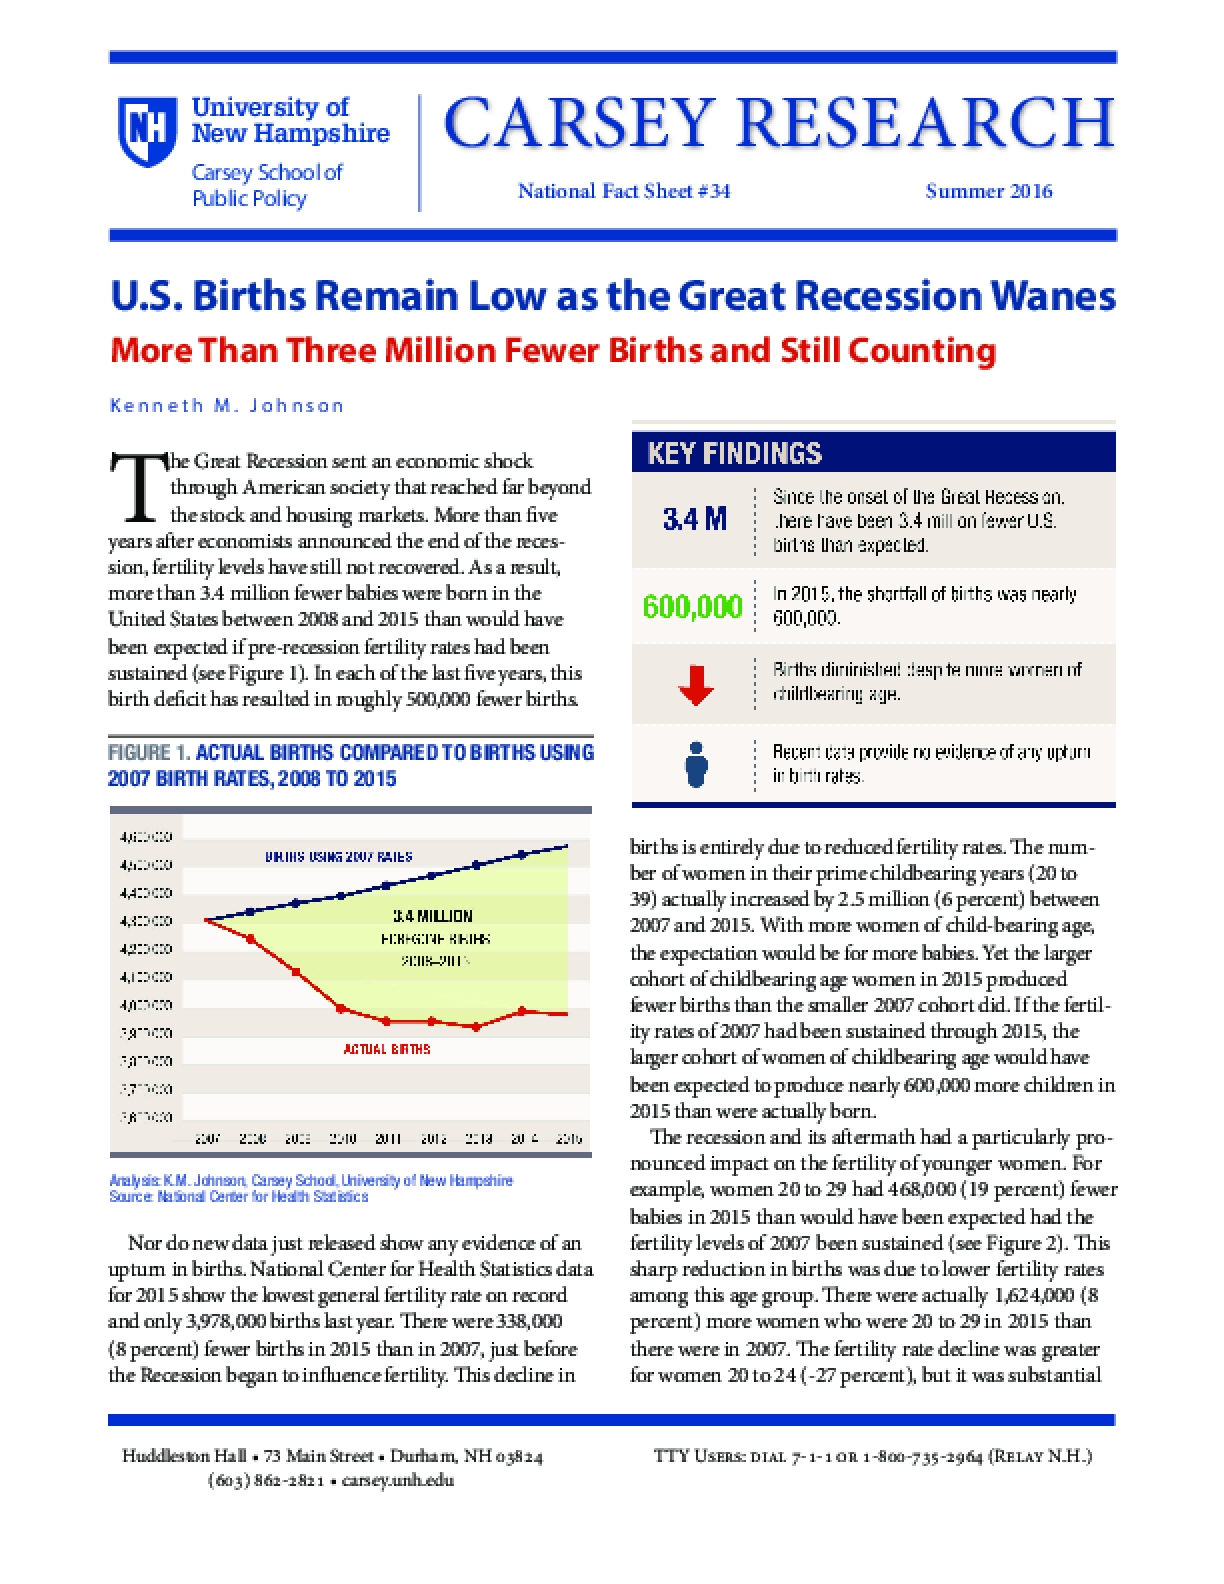 U.S. Births Remain Low as the Great Recession Wanes